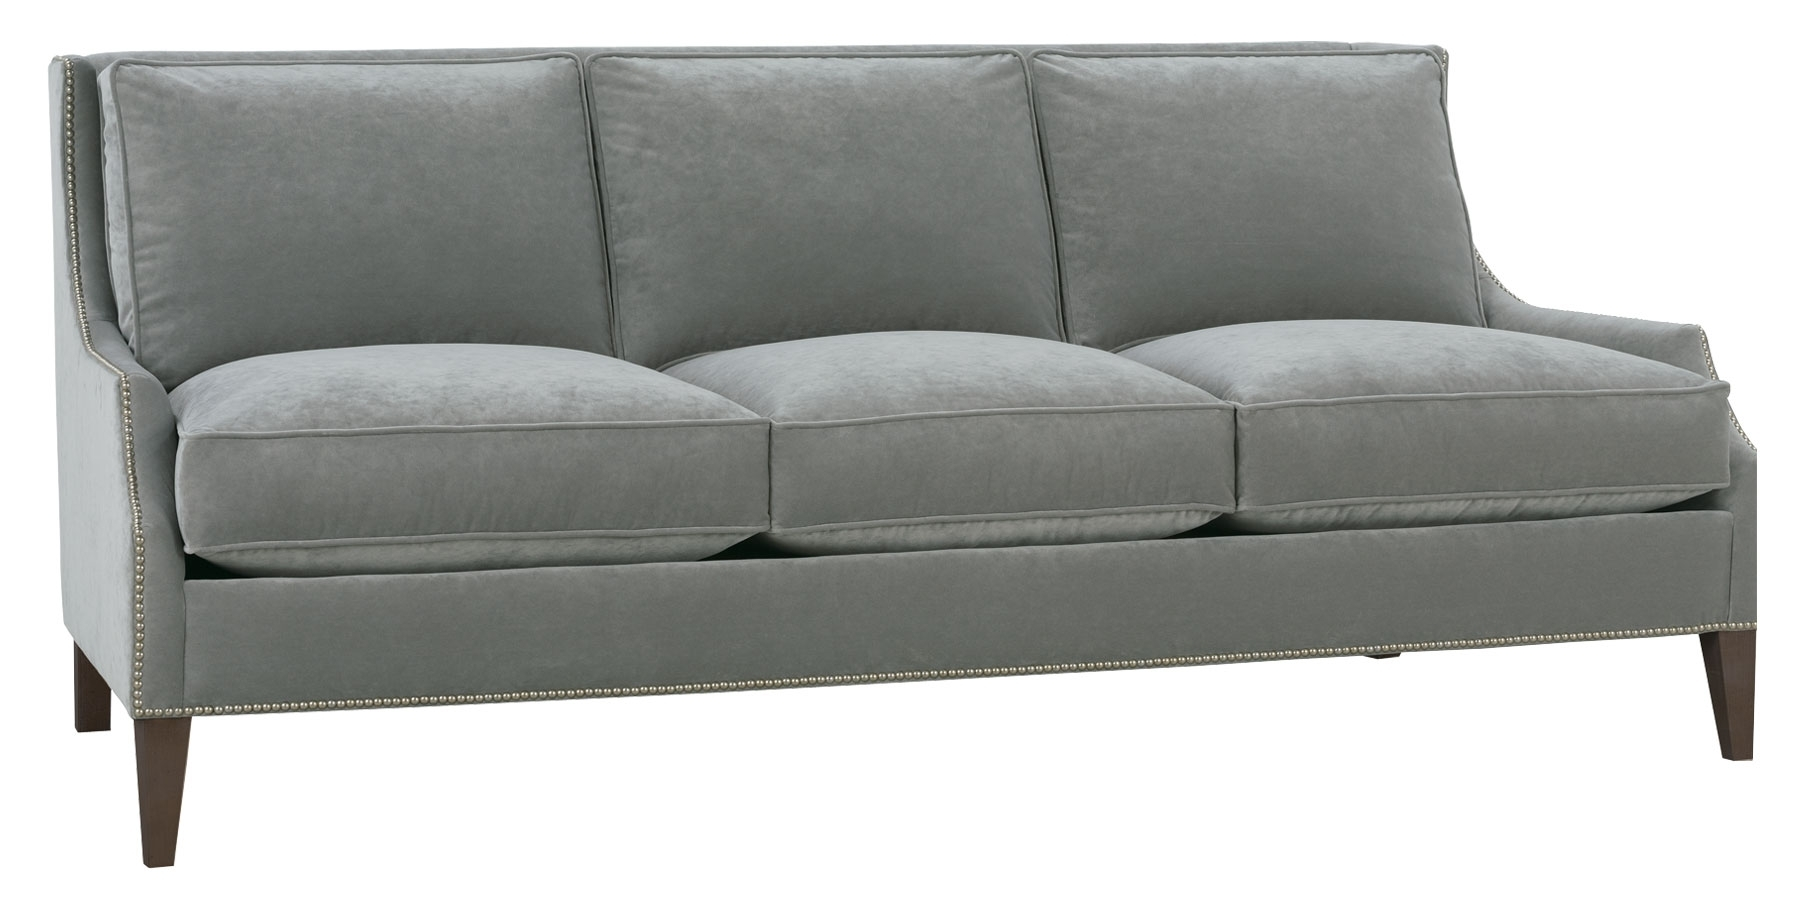 Awesome Apartment Size Sofa 36 About Remodel Office Sofa Ideas With Throughout Apartment Sofas (View 8 of 10)